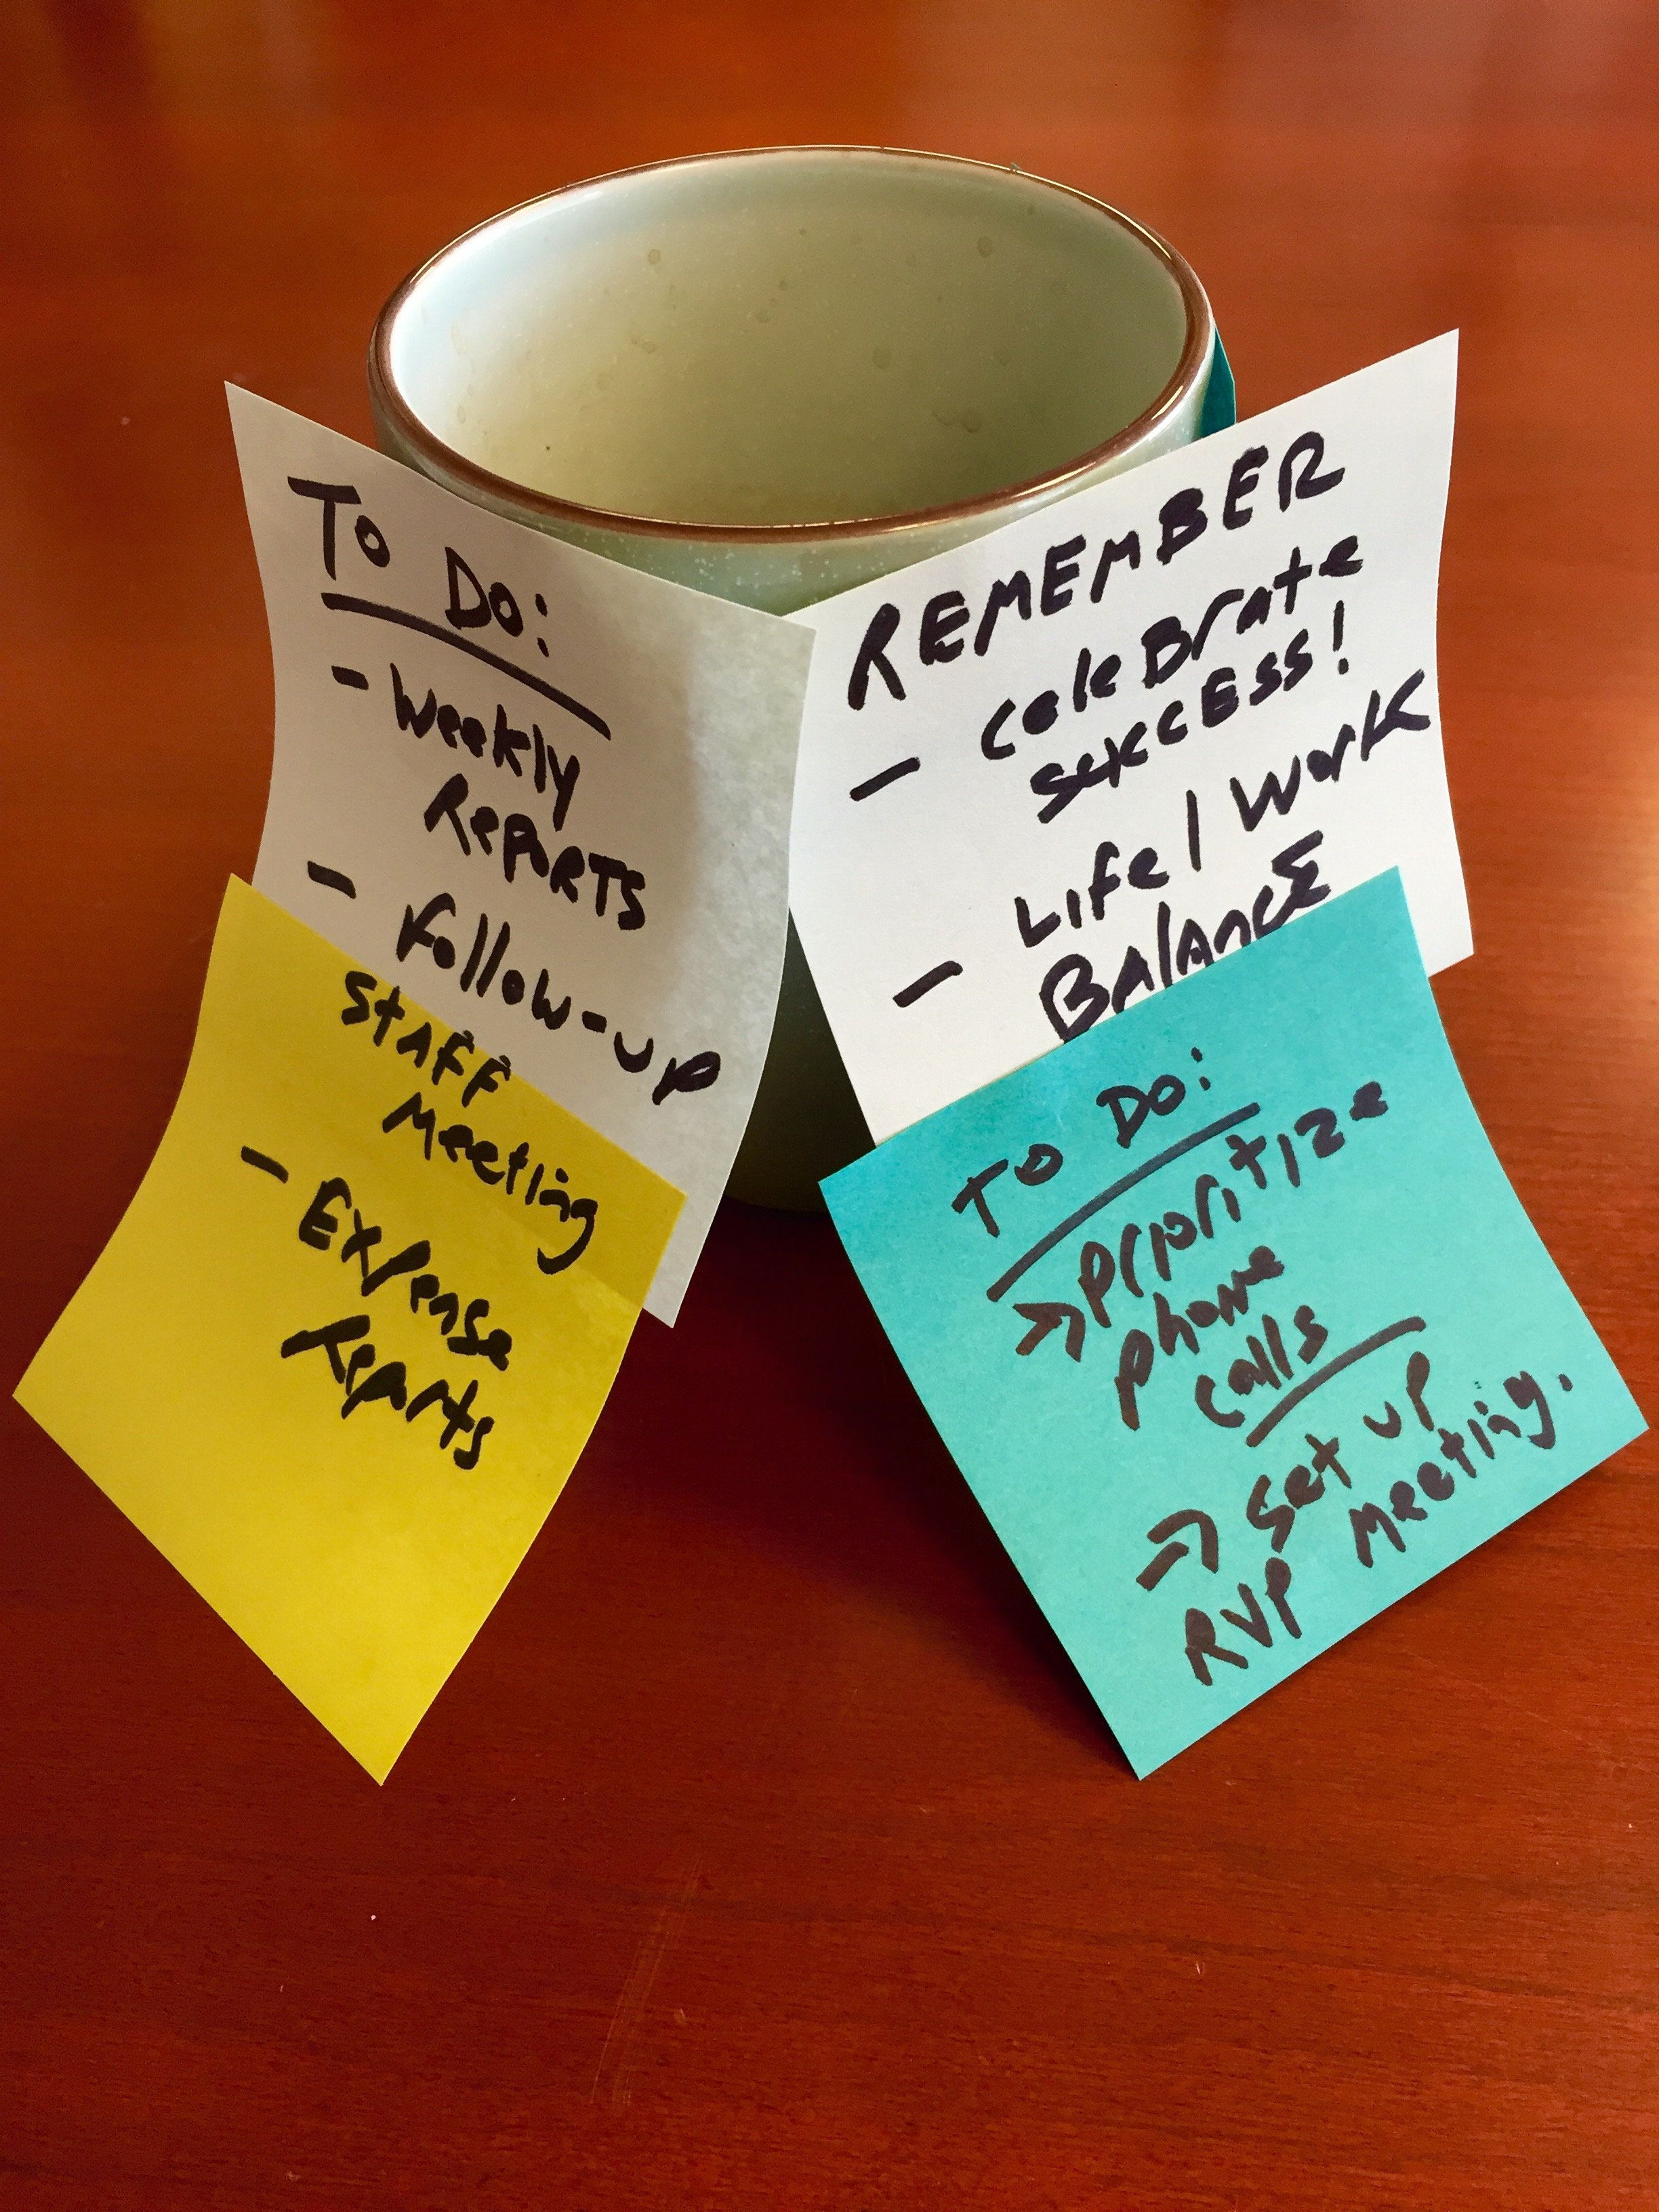 Hand-written sticky notes on a coffee mug on a wood desktop